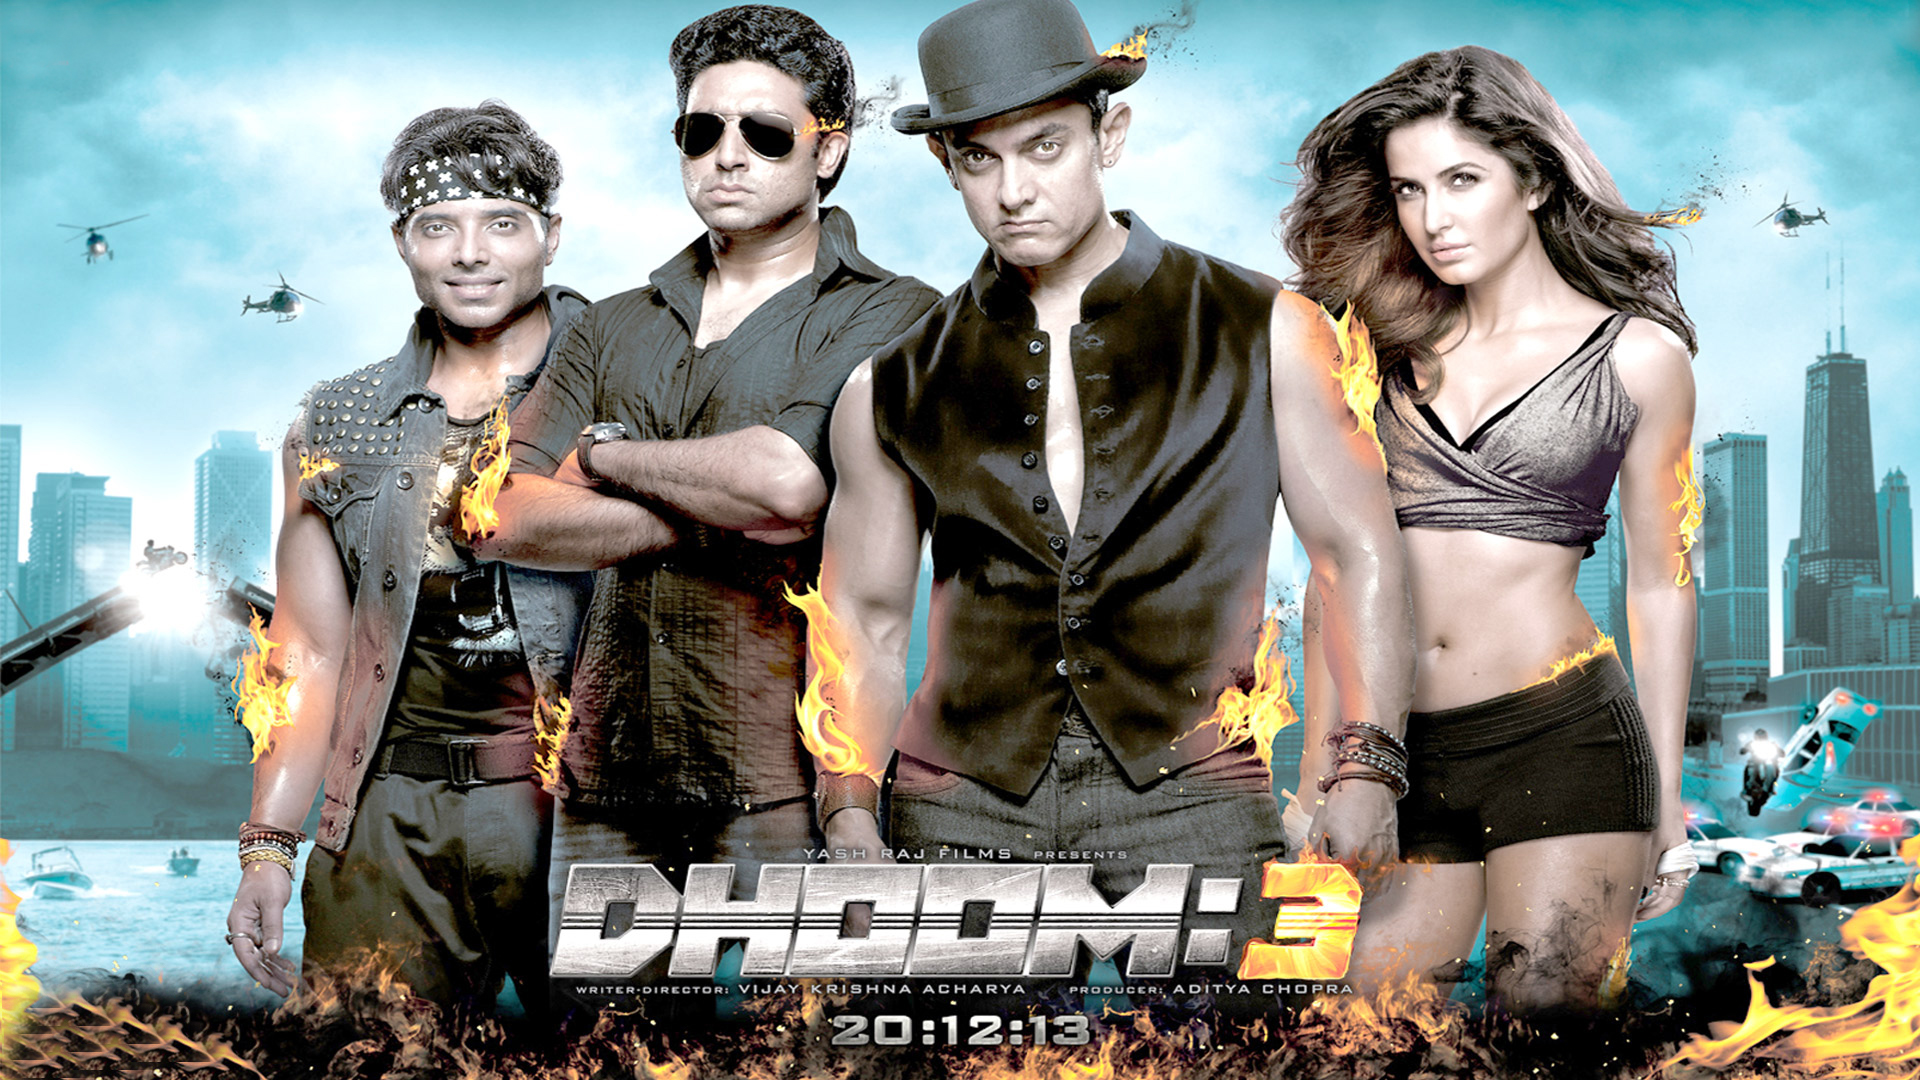 Social Media Campaign Review How Dhoom3themovie Is Making Dhoom On Social Media